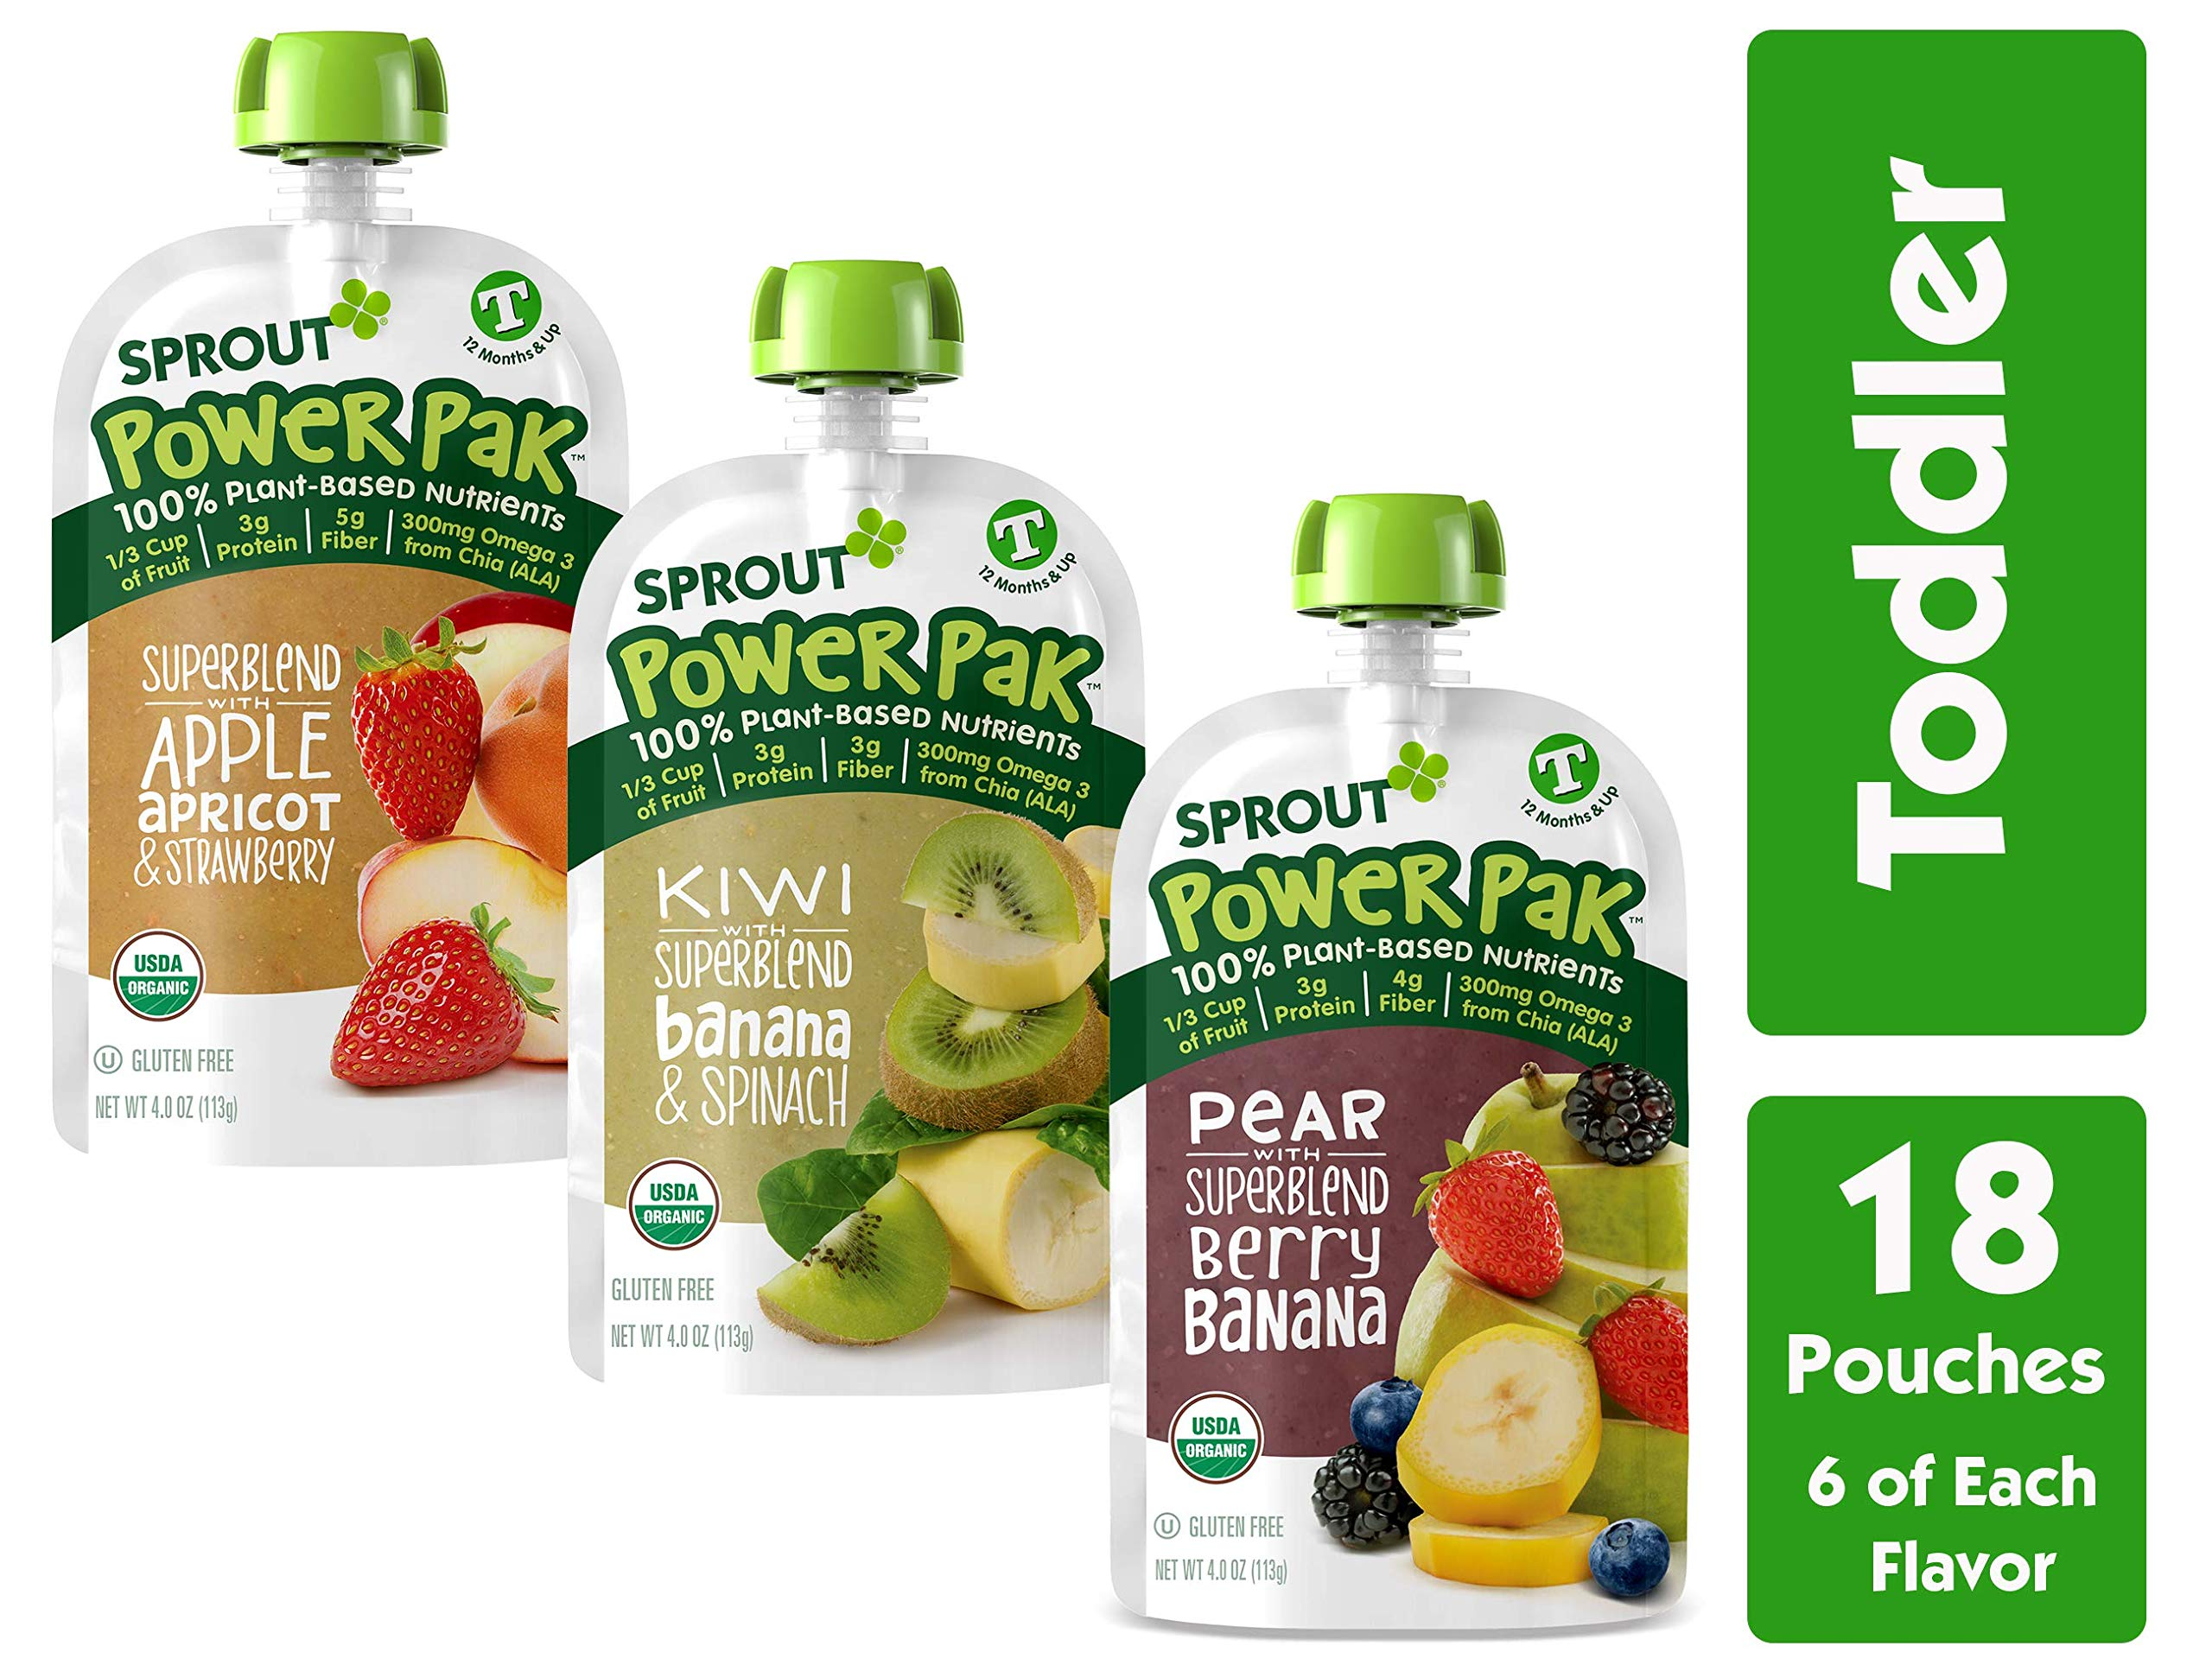 Sprout Organic Stage 4 Toddler Food Power Pak Pouches, Variety Pack, 4 Ounce (Pack of 18) 6 of Each Superblend: Apple Apricot Strawberry, Kiwi Banana Spinach & Pear Blackberry Banana by Sprout